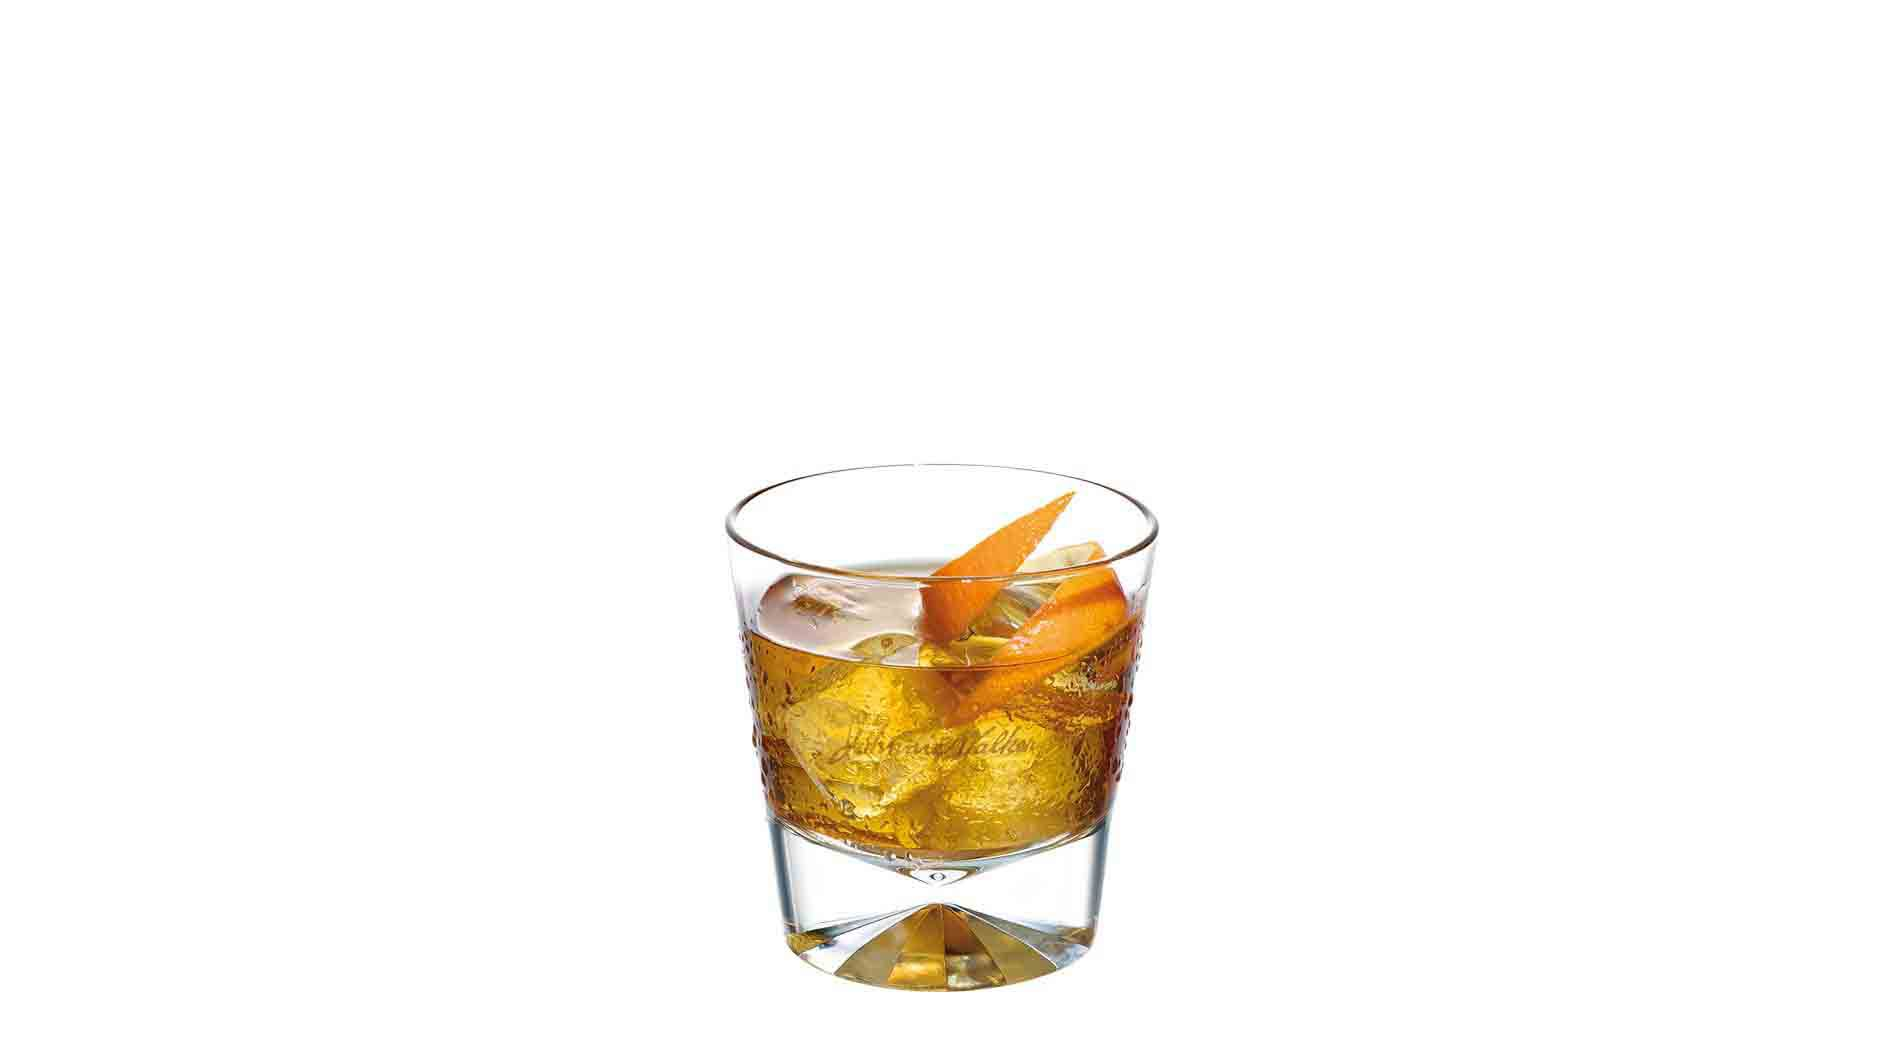 Cocktail Gold Fashioned dans un verre à whisky